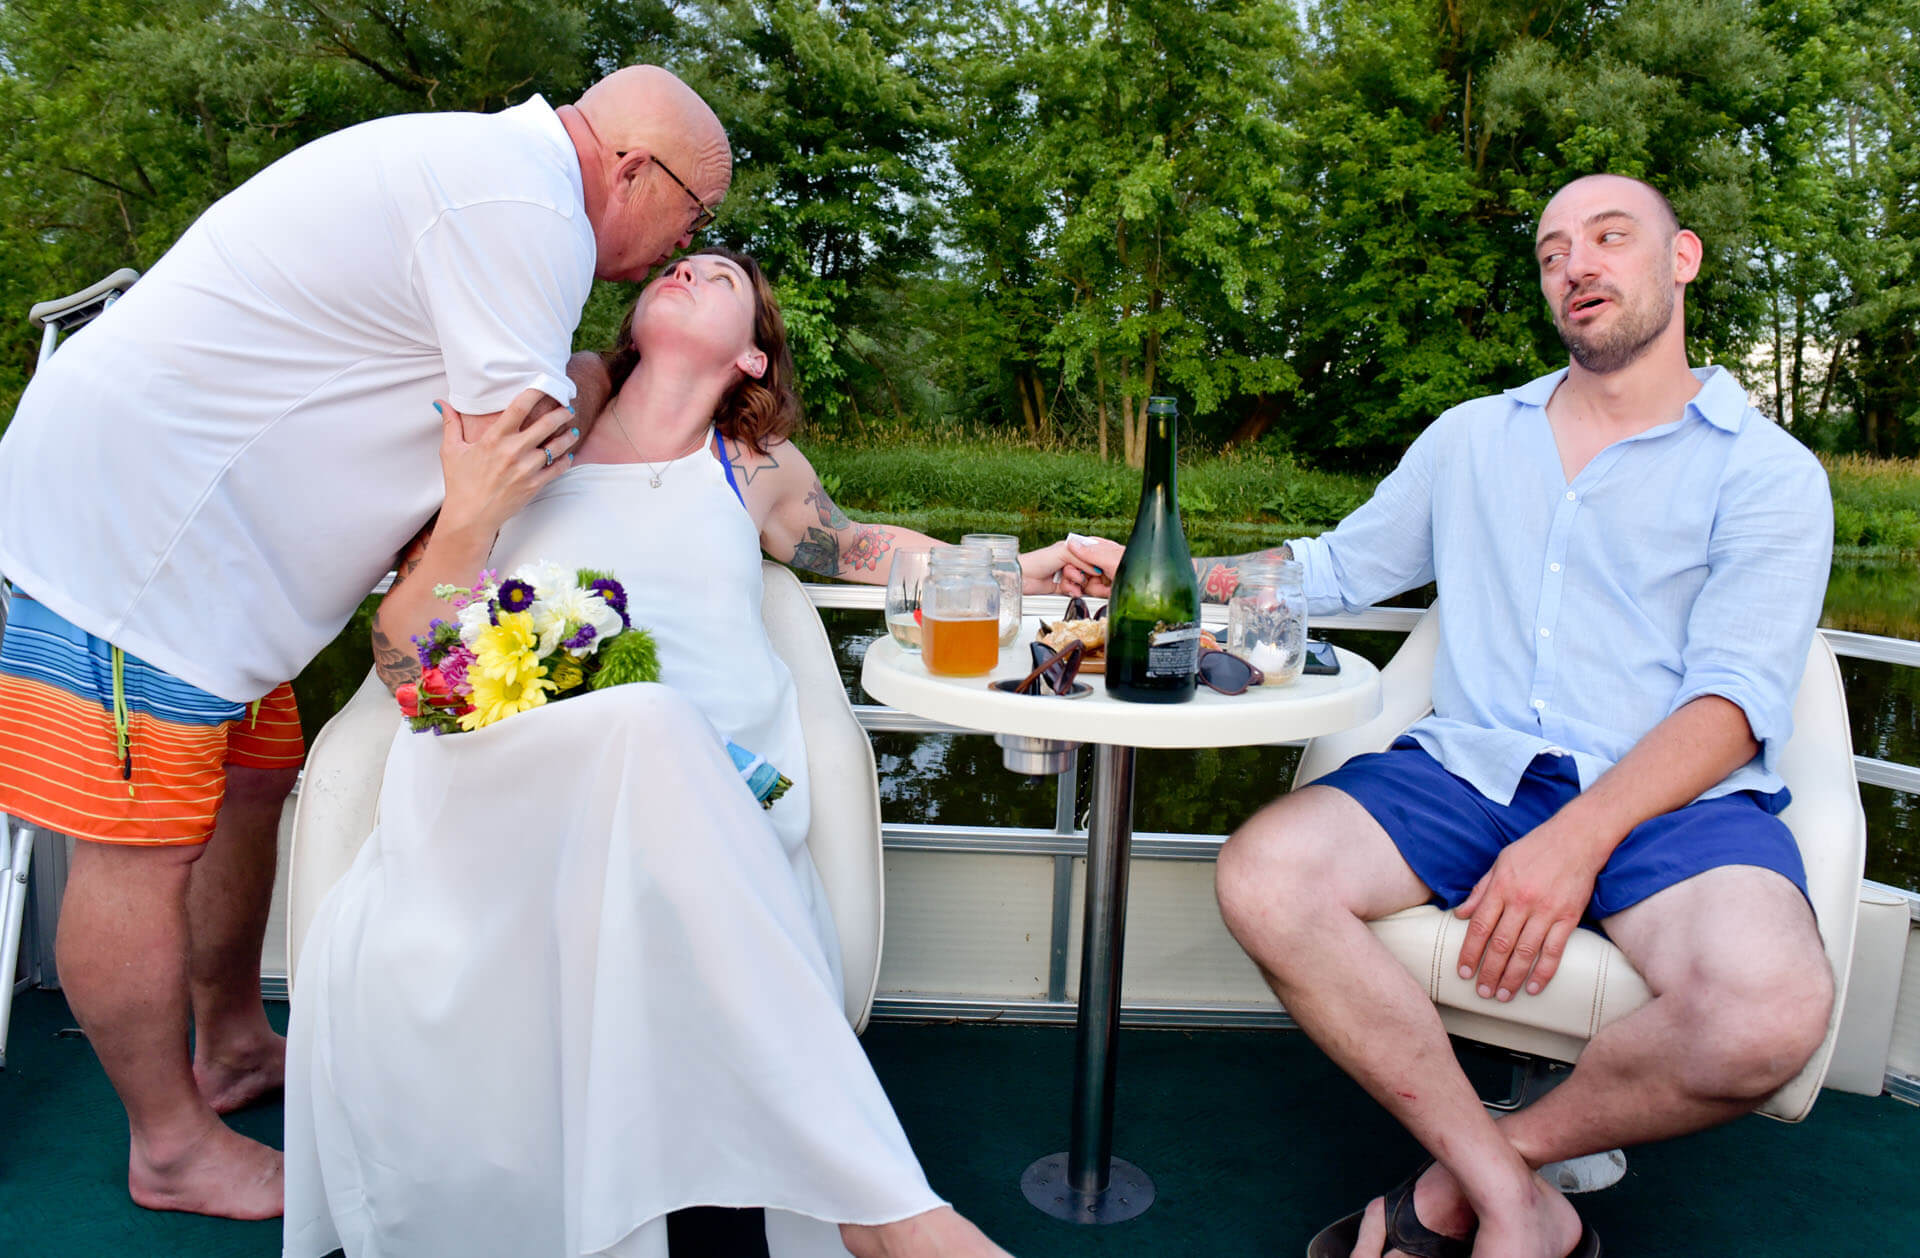 Documentary wedding photo of a father kissing his daughter while her new husband looks on after a backyard river wedding in Michigan.